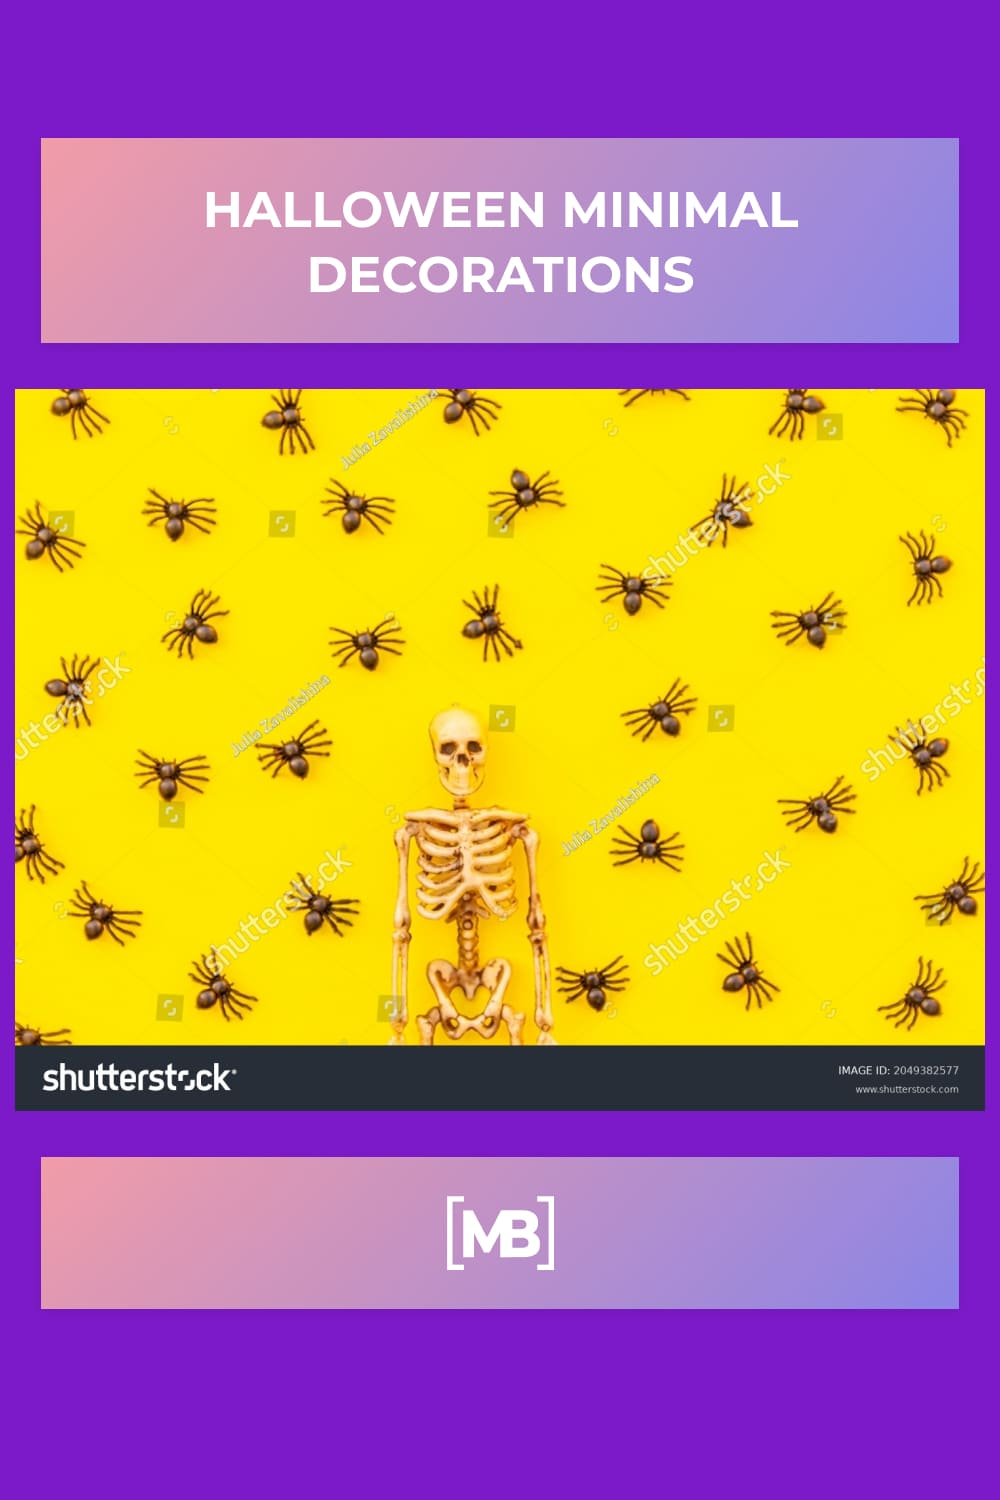 14 Halloween minimal decorations composition with many black spiders and skeleton